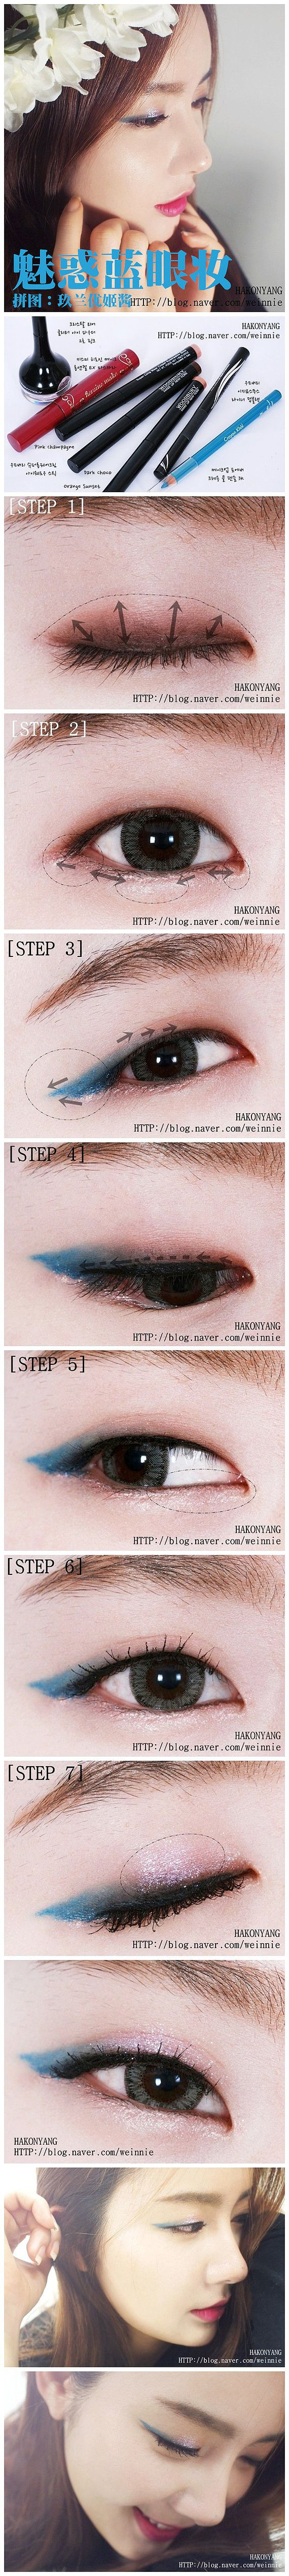 Monolid eyeshadow tutorial.  The eyeshadow sticks shown are pretty trendy right now and you can get them from Laura Mercier, Bobbi Brown and my personal budget favorite Kiko Milano if you have a store near you.  Love the pop of blue!